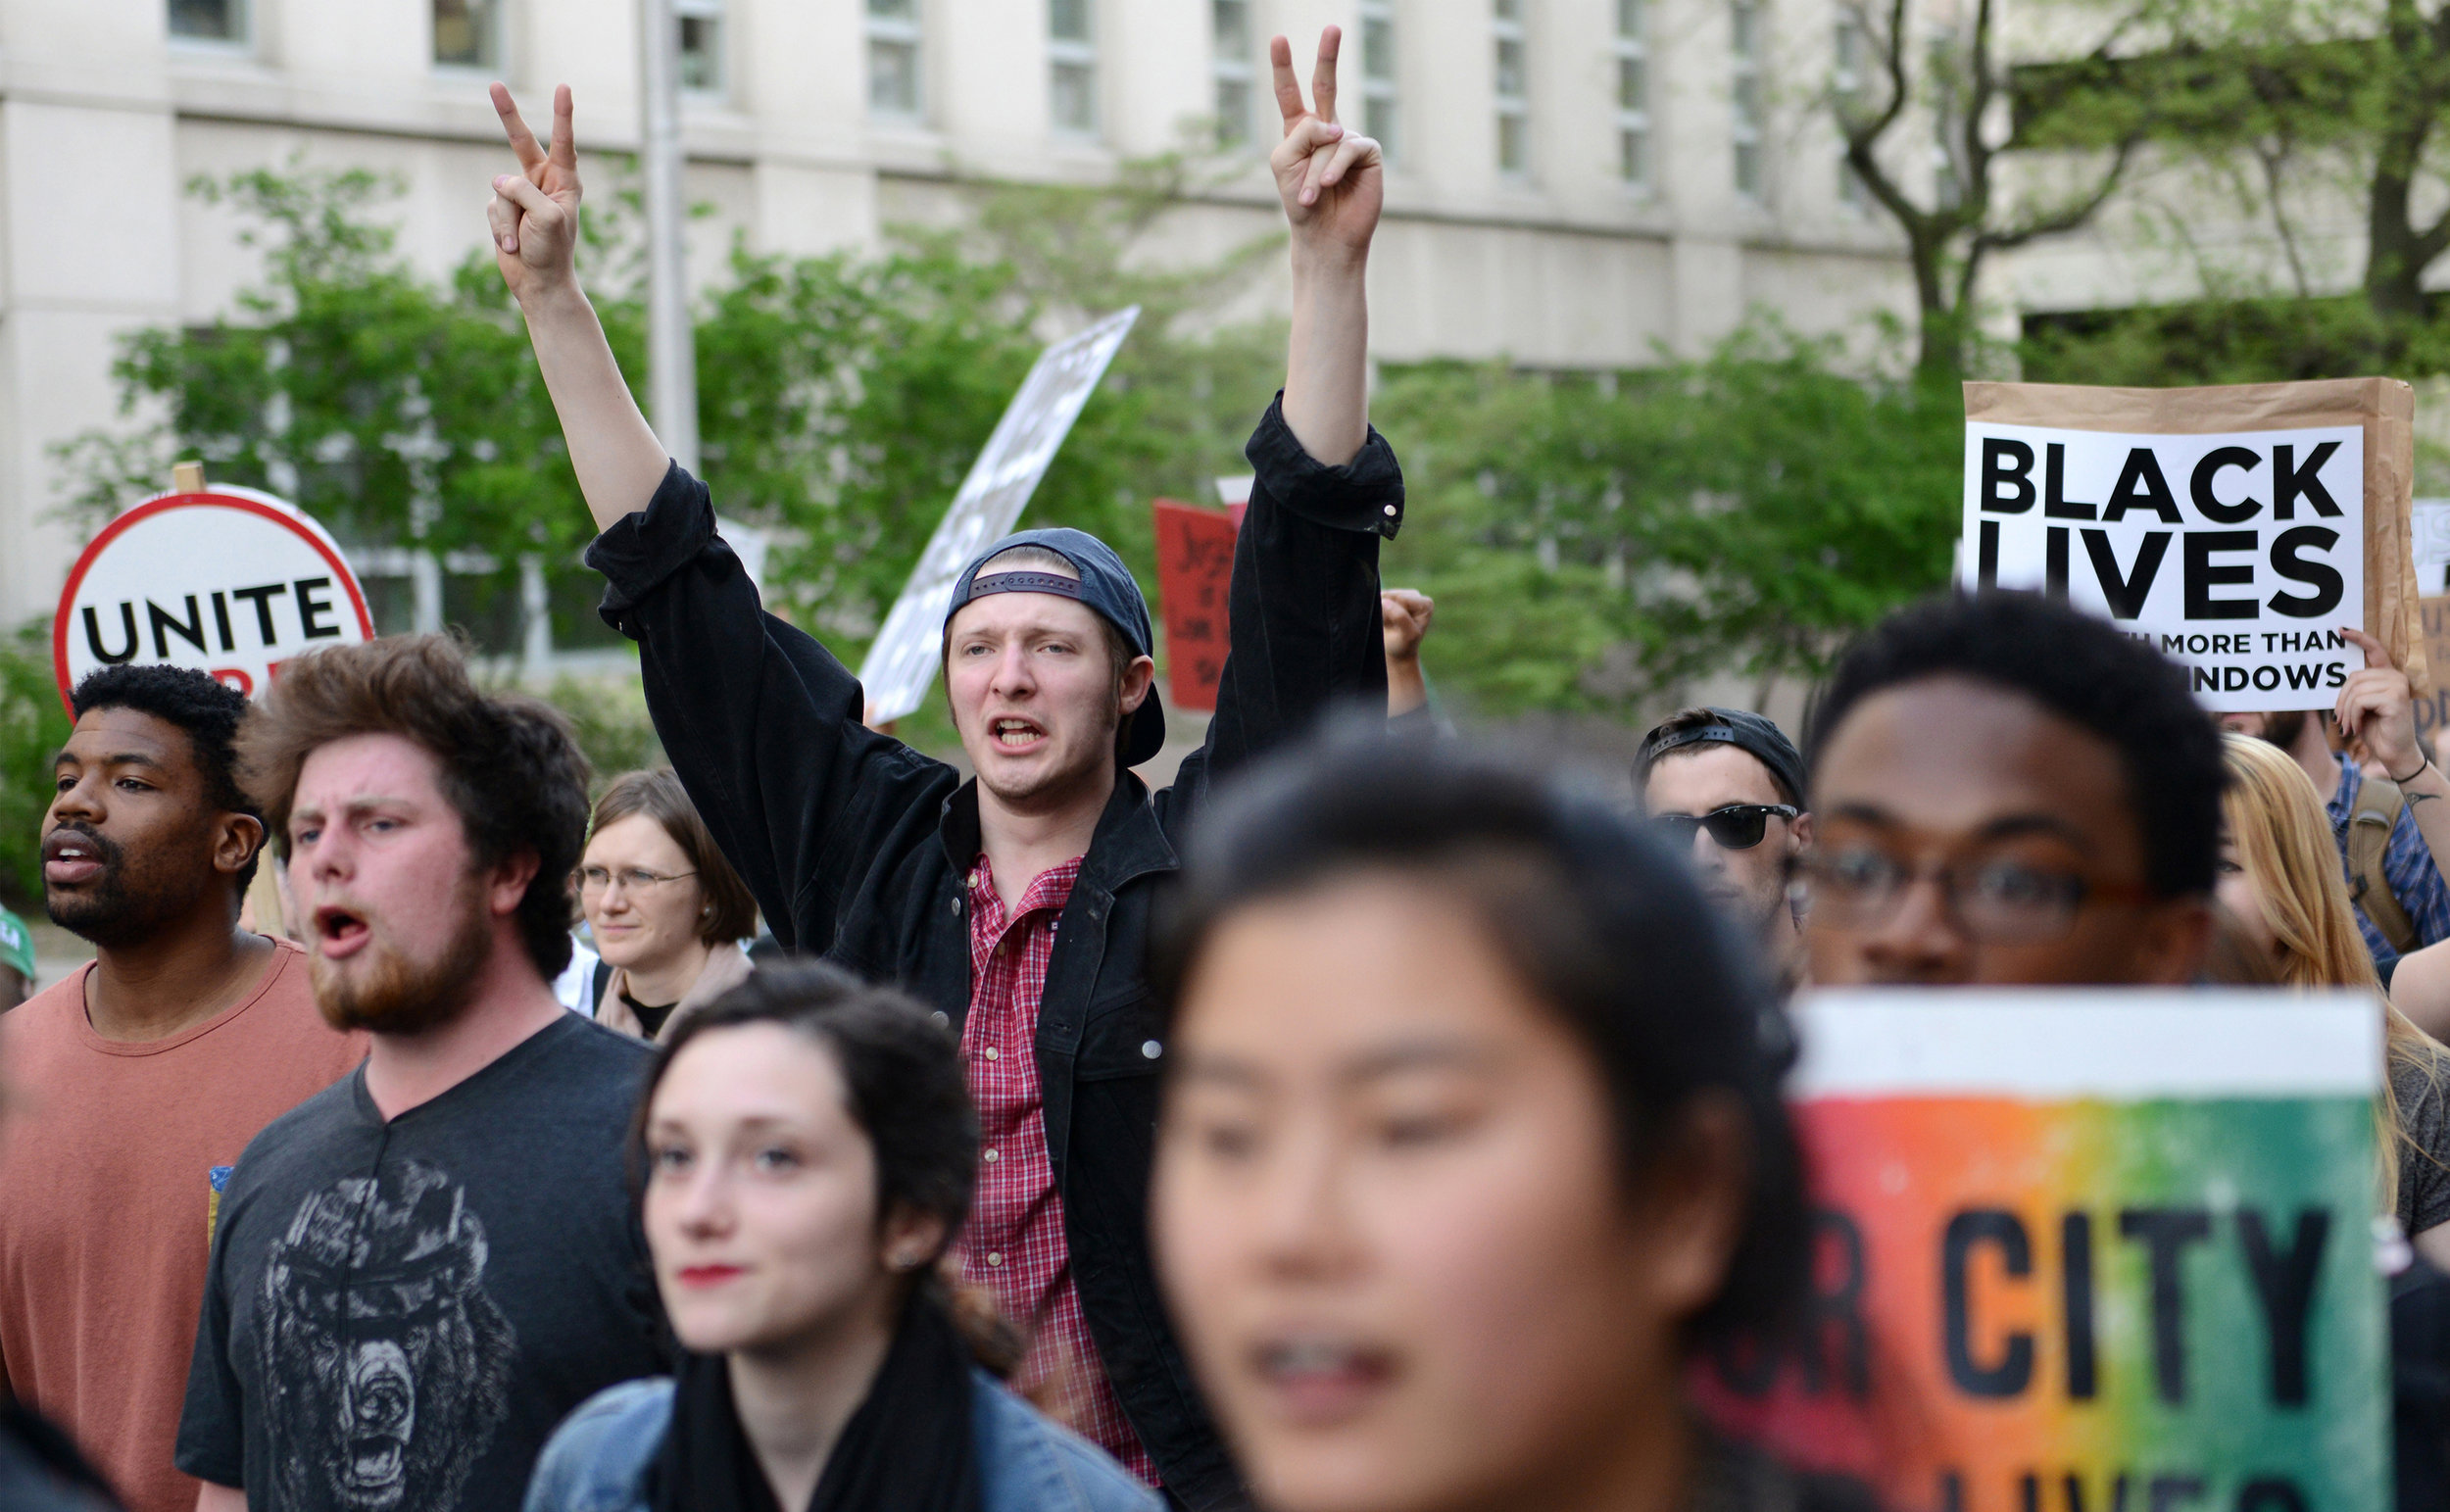 Protester Renato Flores holds up peace signs on Wednesday, April 29, 2015 in Baltimore, Md. as Baltimore residents march from City Hall to Penn Station in a peaceful protest of the death of Freddie Gray. The march took place two days after violent protests broke out in the streets of Baltimore. Photo by David Andrews.